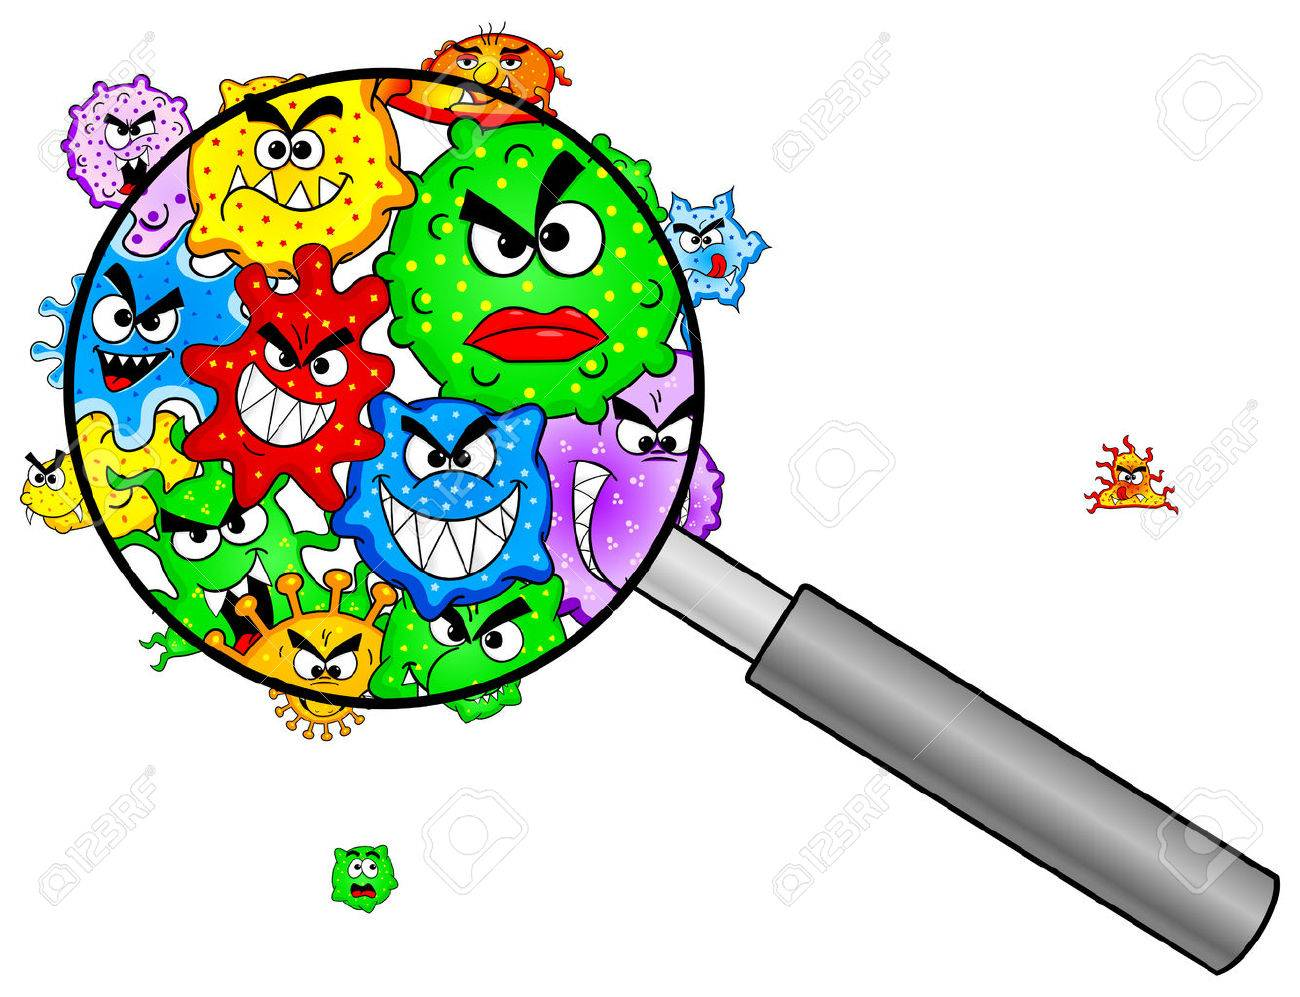 vector illustration of bacteria under a magnifying glass - 29139394